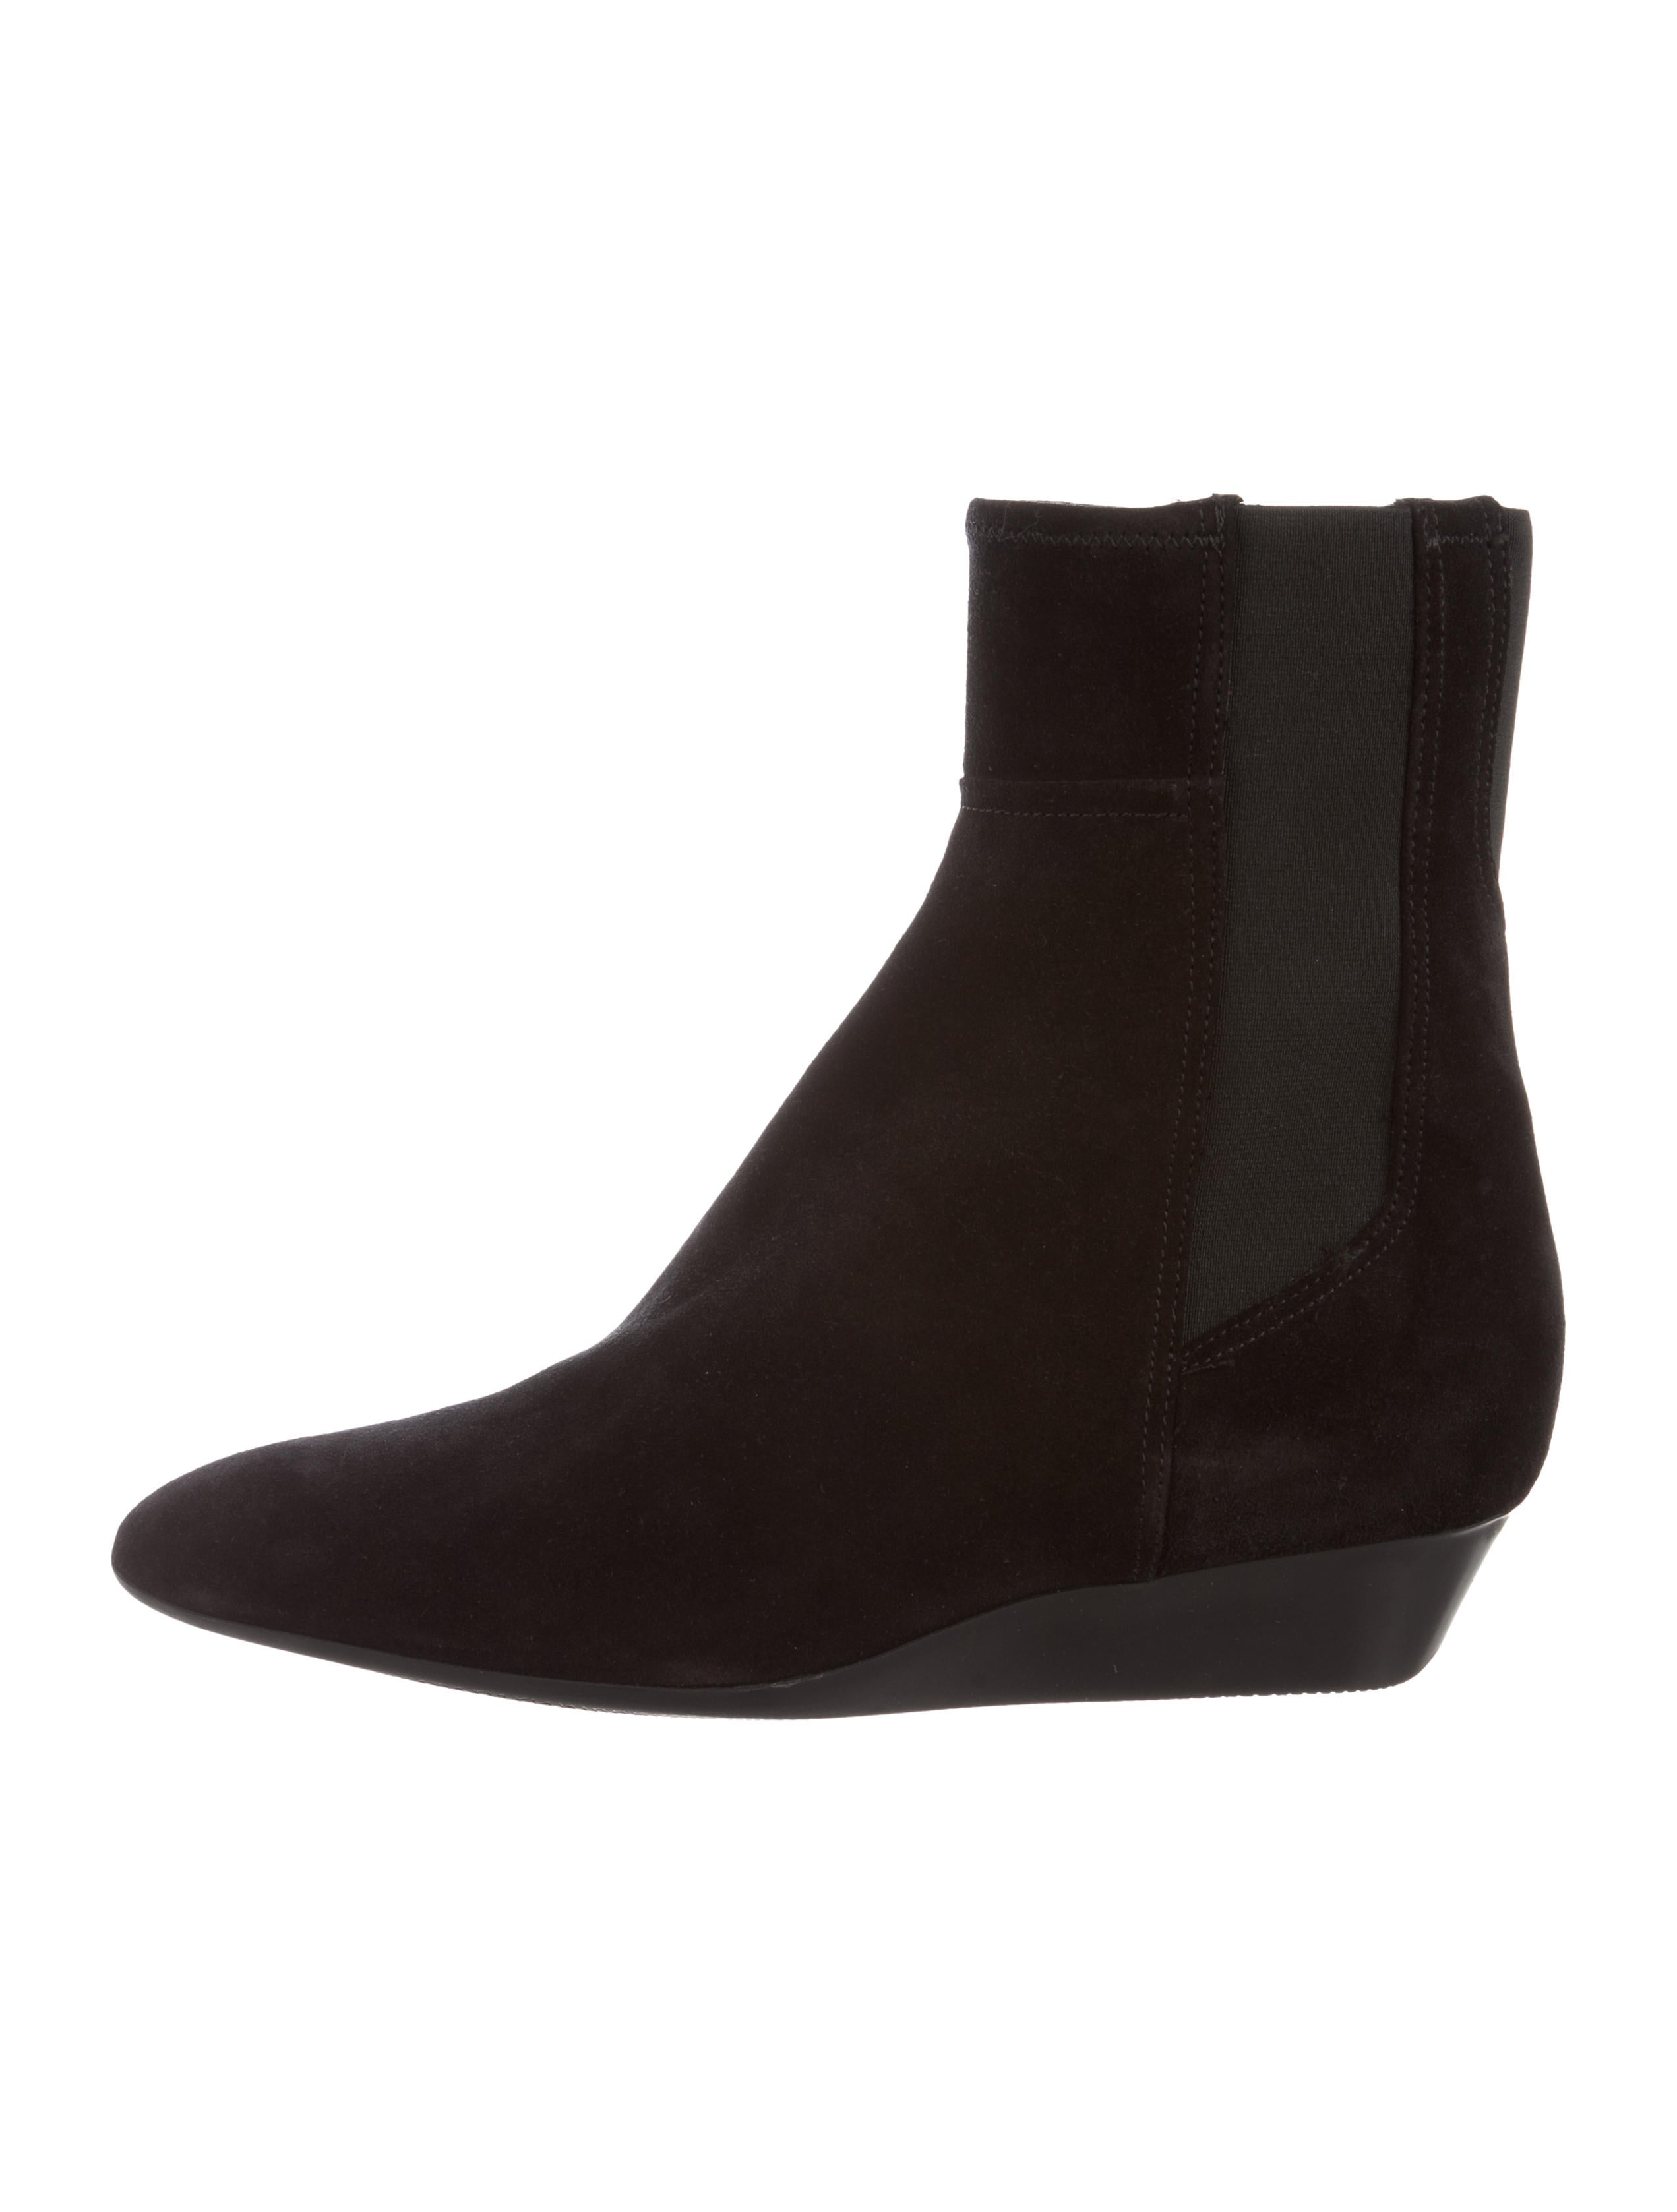 Prada Sport Calzature Donna Suede Ankle Boots w/ Tags cheap wiki uJhATy1S